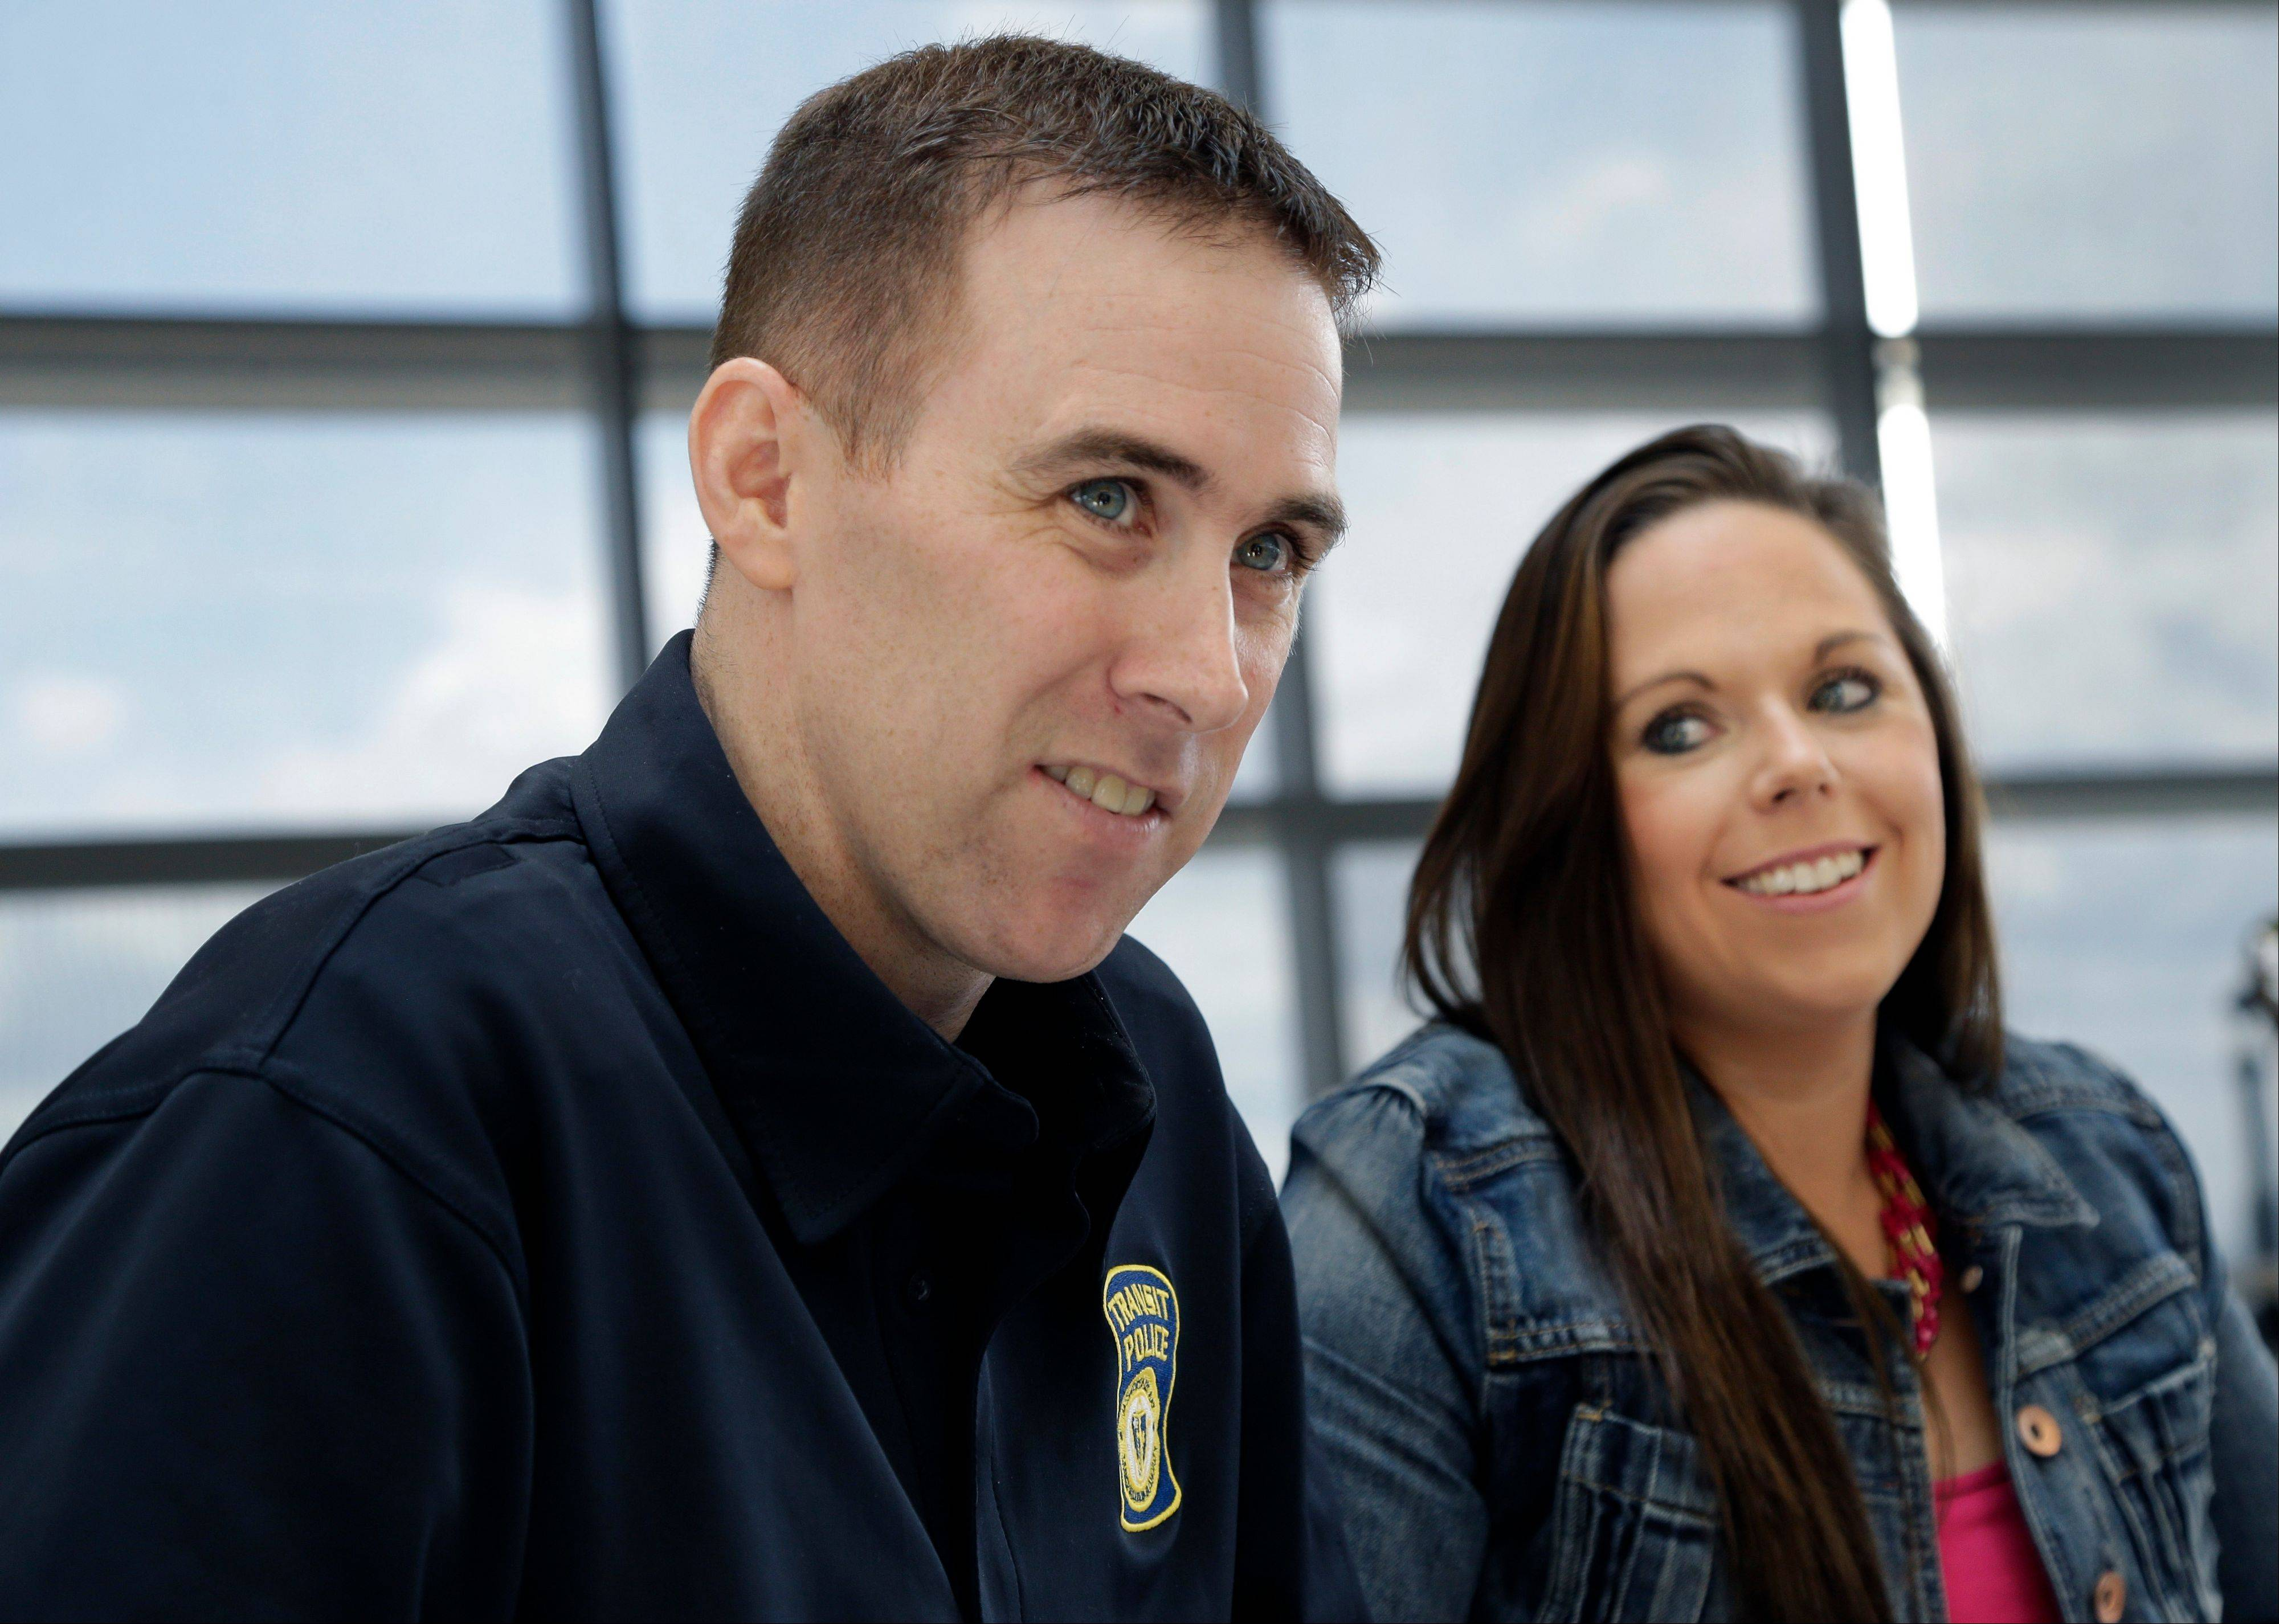 MBTA Police Officer Richard Donahue smiles with his wife, Kim, during an interview at Spaulding Rehabilitation Hospital in Boston�s Charlestown section, Sunday, May 19, 2013. Donahue almost lost his life after being shot during the crossfire with the Boston Marathon bombing suspects in Watertown, Mass. (AP Photo/Elise Amendola)